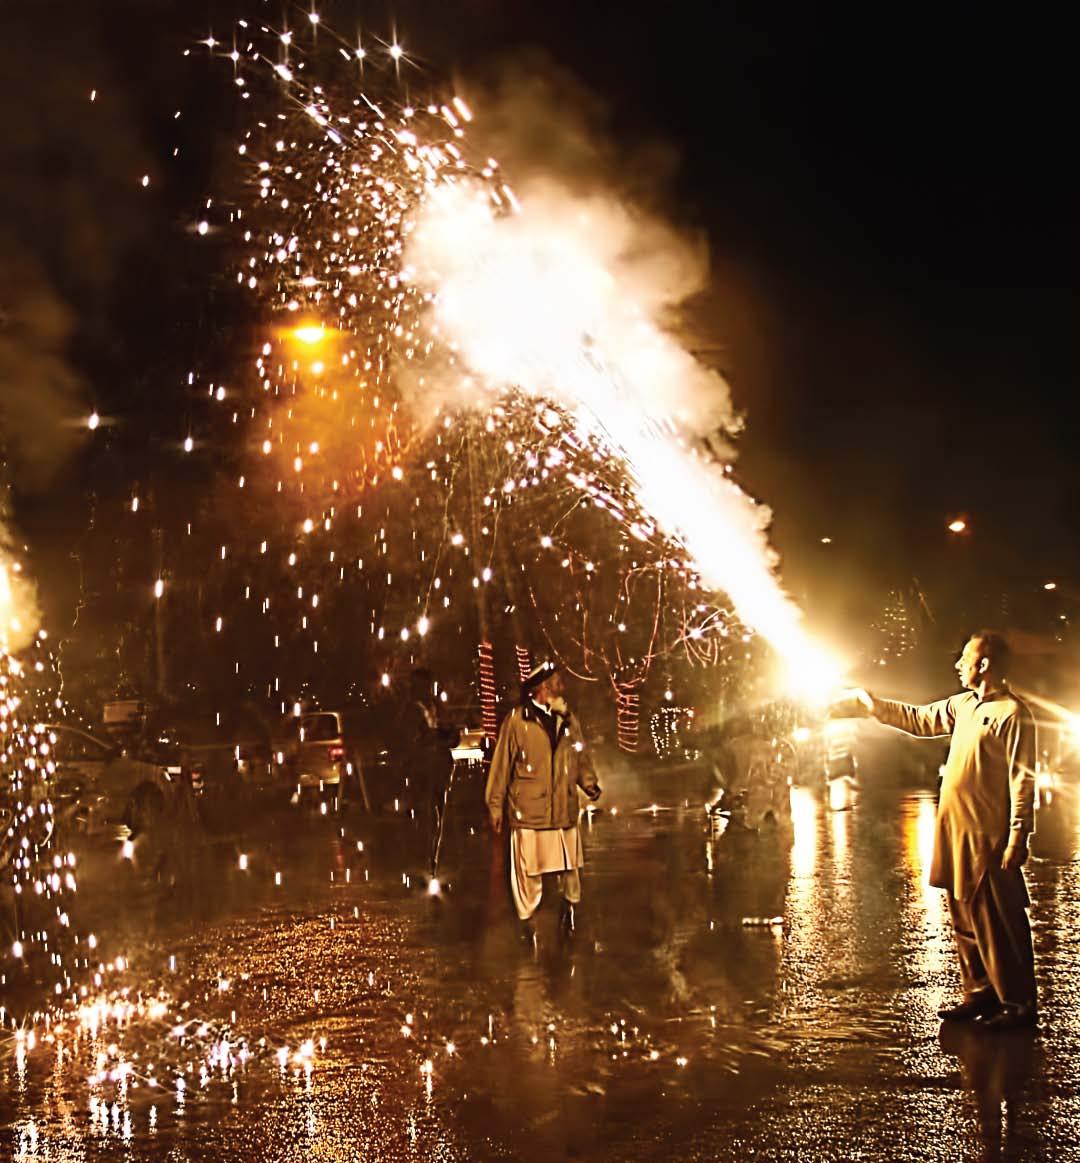 Fireworks being set off on the eve of Rabiul Awwal 12. PHOTOS: EXPRESS/ABID NAWAZ